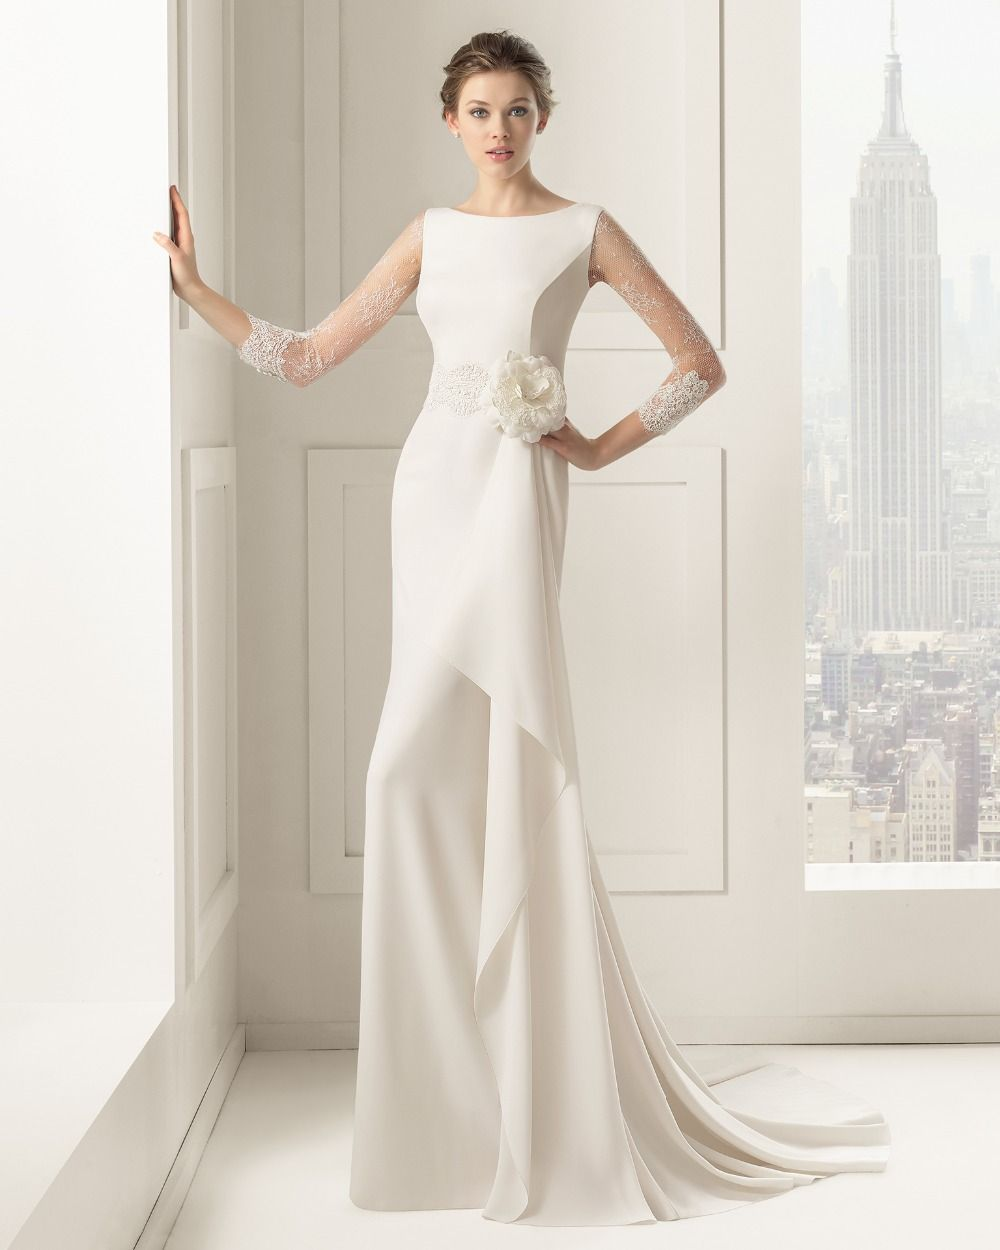 Cheap Gown Music Buy Quality Dress Wedding Gown Directly From China Dresses Nj Suppliers Please Sup Wedding Dresses Online Wedding Dress Bridal Dresses Online